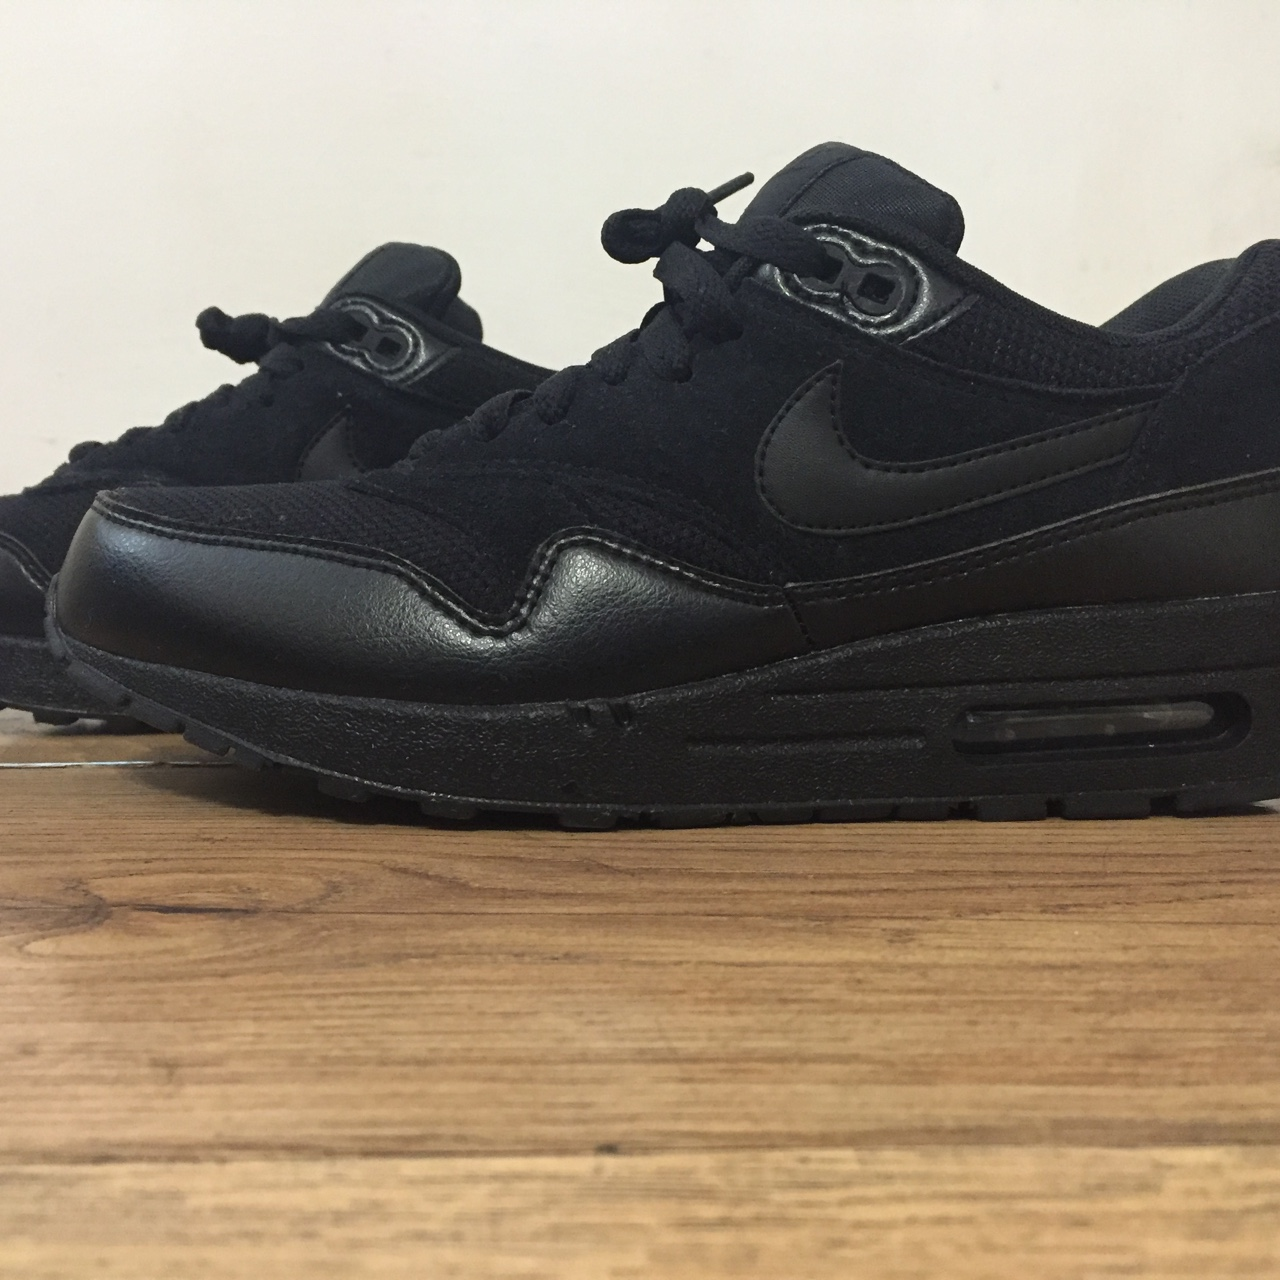 Nike Air Max 1 Essential All Black Size 6 Leather Depop